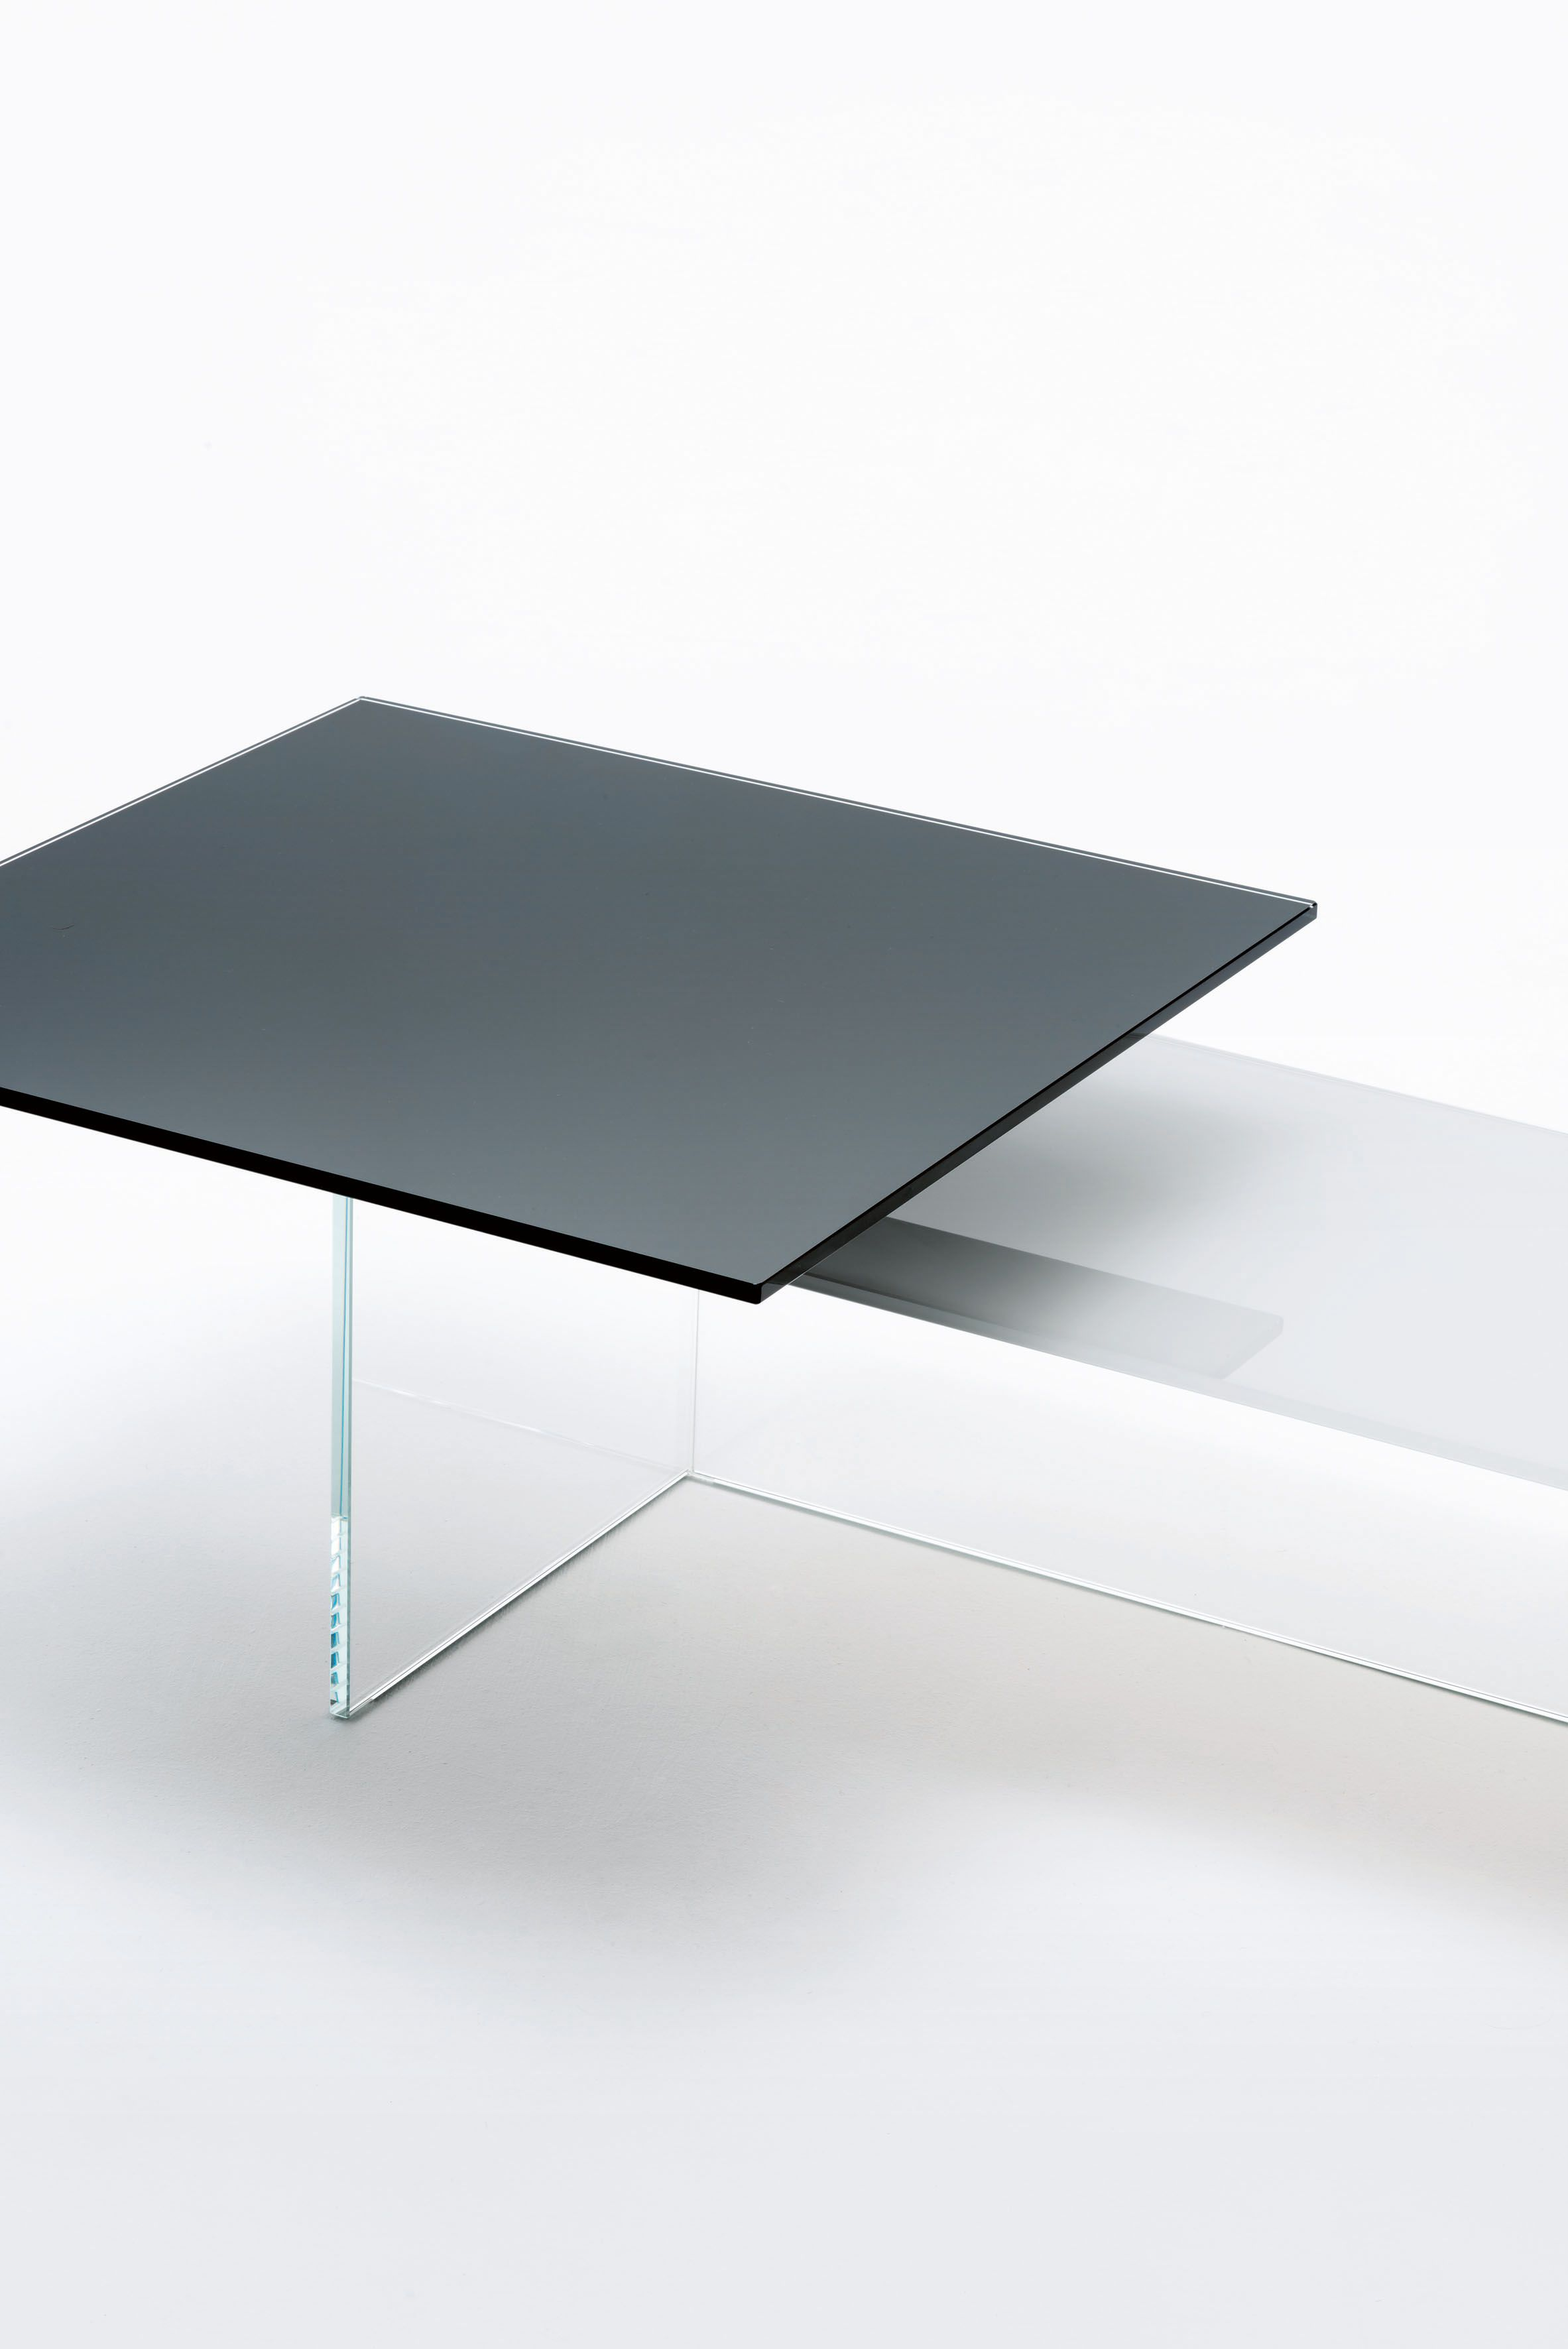 Kris Kros Design Marc Krusin Low Tables With Double Plate In Tempered Glossy Lacquered